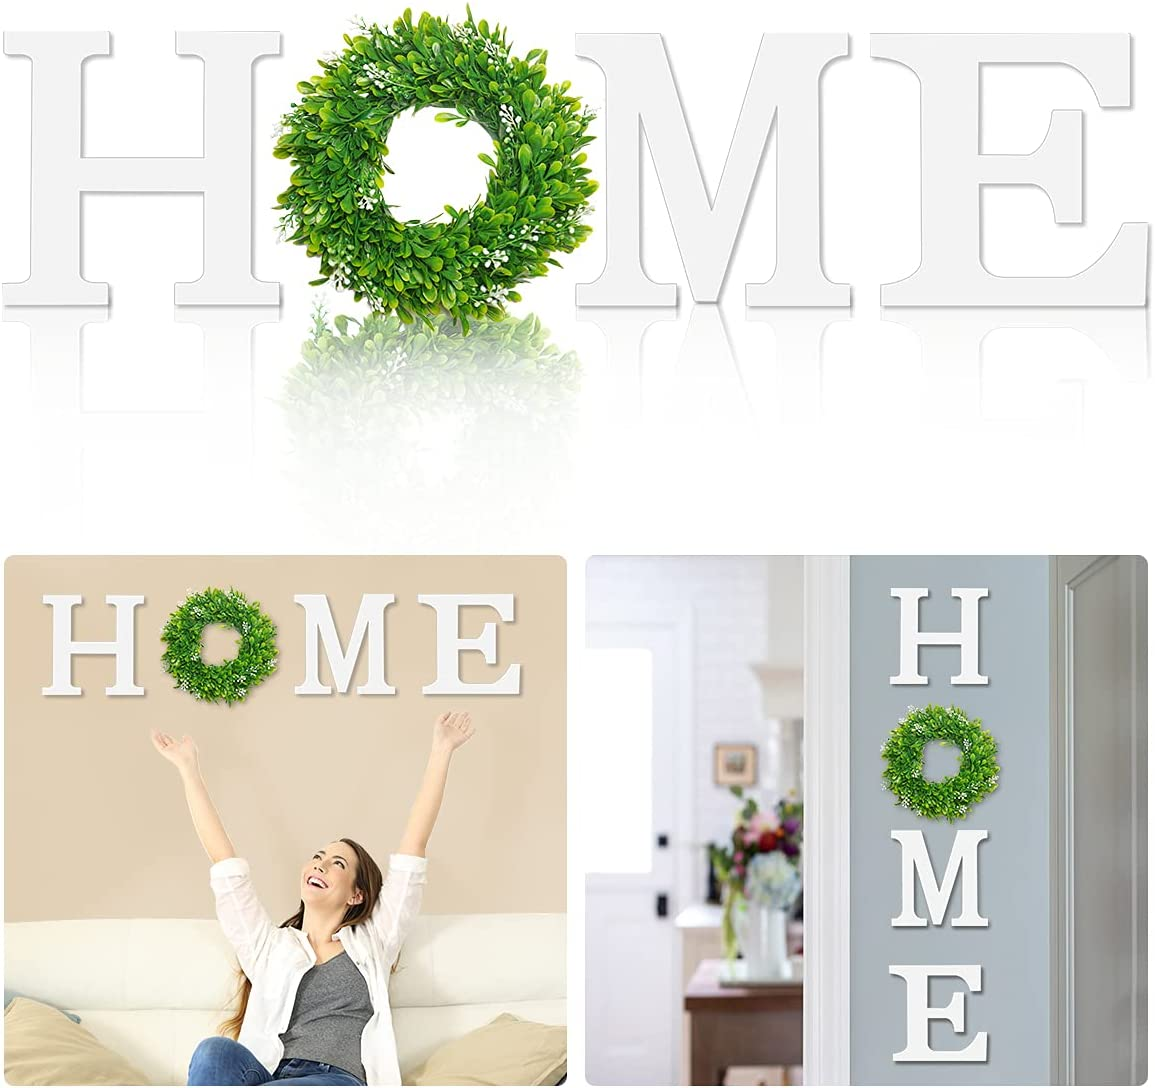 BITLIFUN 12in Home Sign Wall Hanging Wood Letters with Artificial Wreath for Wall Decor, 12in Rustic Wall Letters Home Decor, Farmhouse Wall Decor for Living Room,Bedroom, Kitchen,Doorway, White-W1